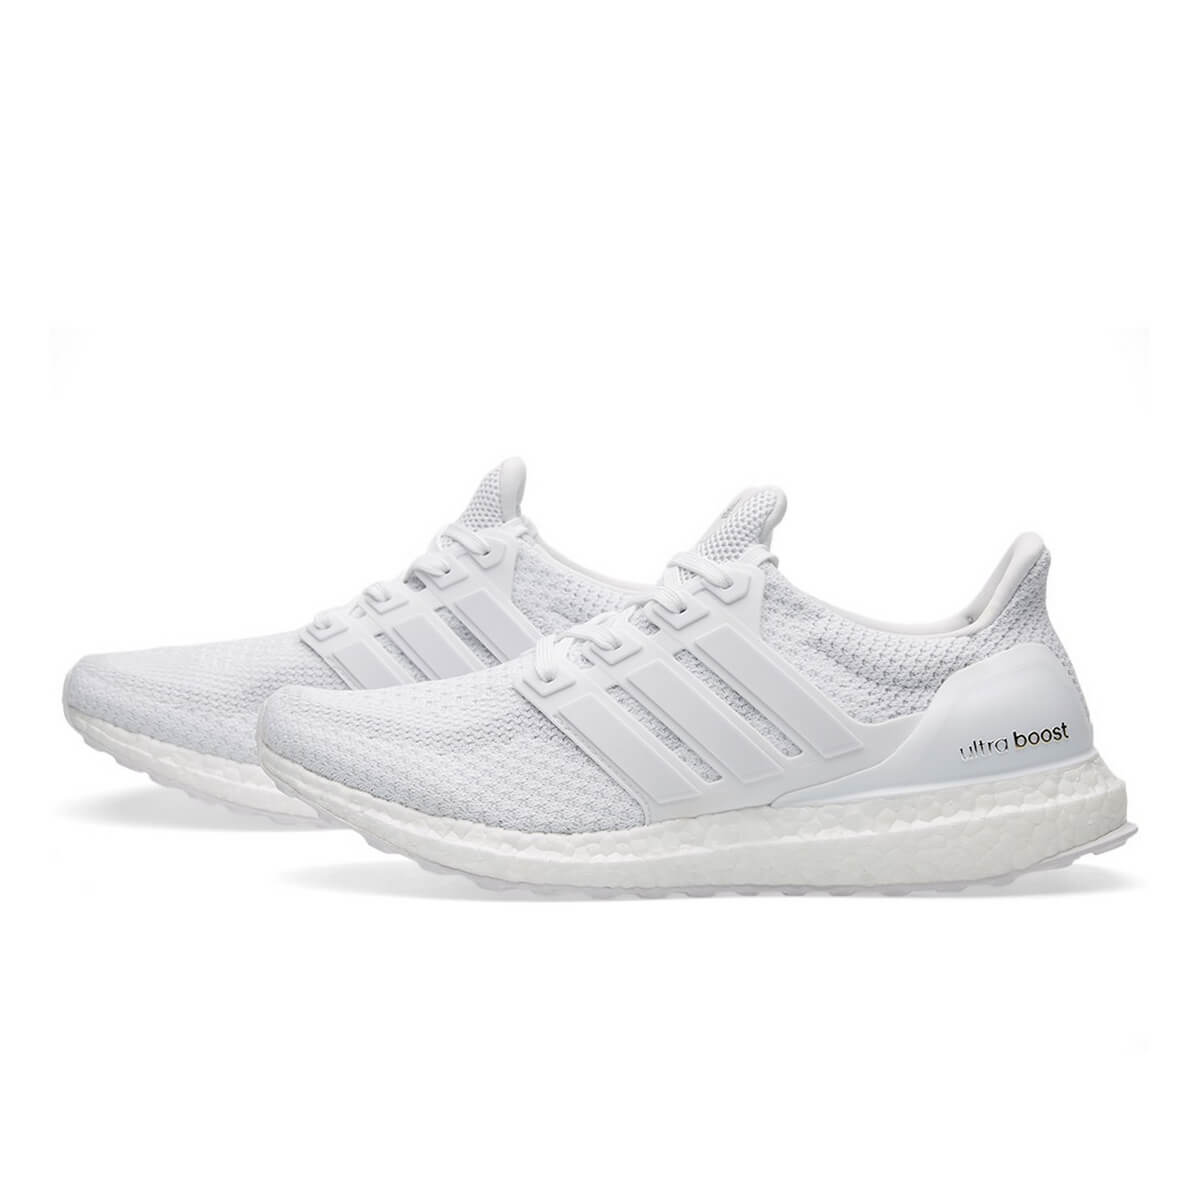 adidas ultra boost triple white 2 0 men aq5929 pop need. Black Bedroom Furniture Sets. Home Design Ideas